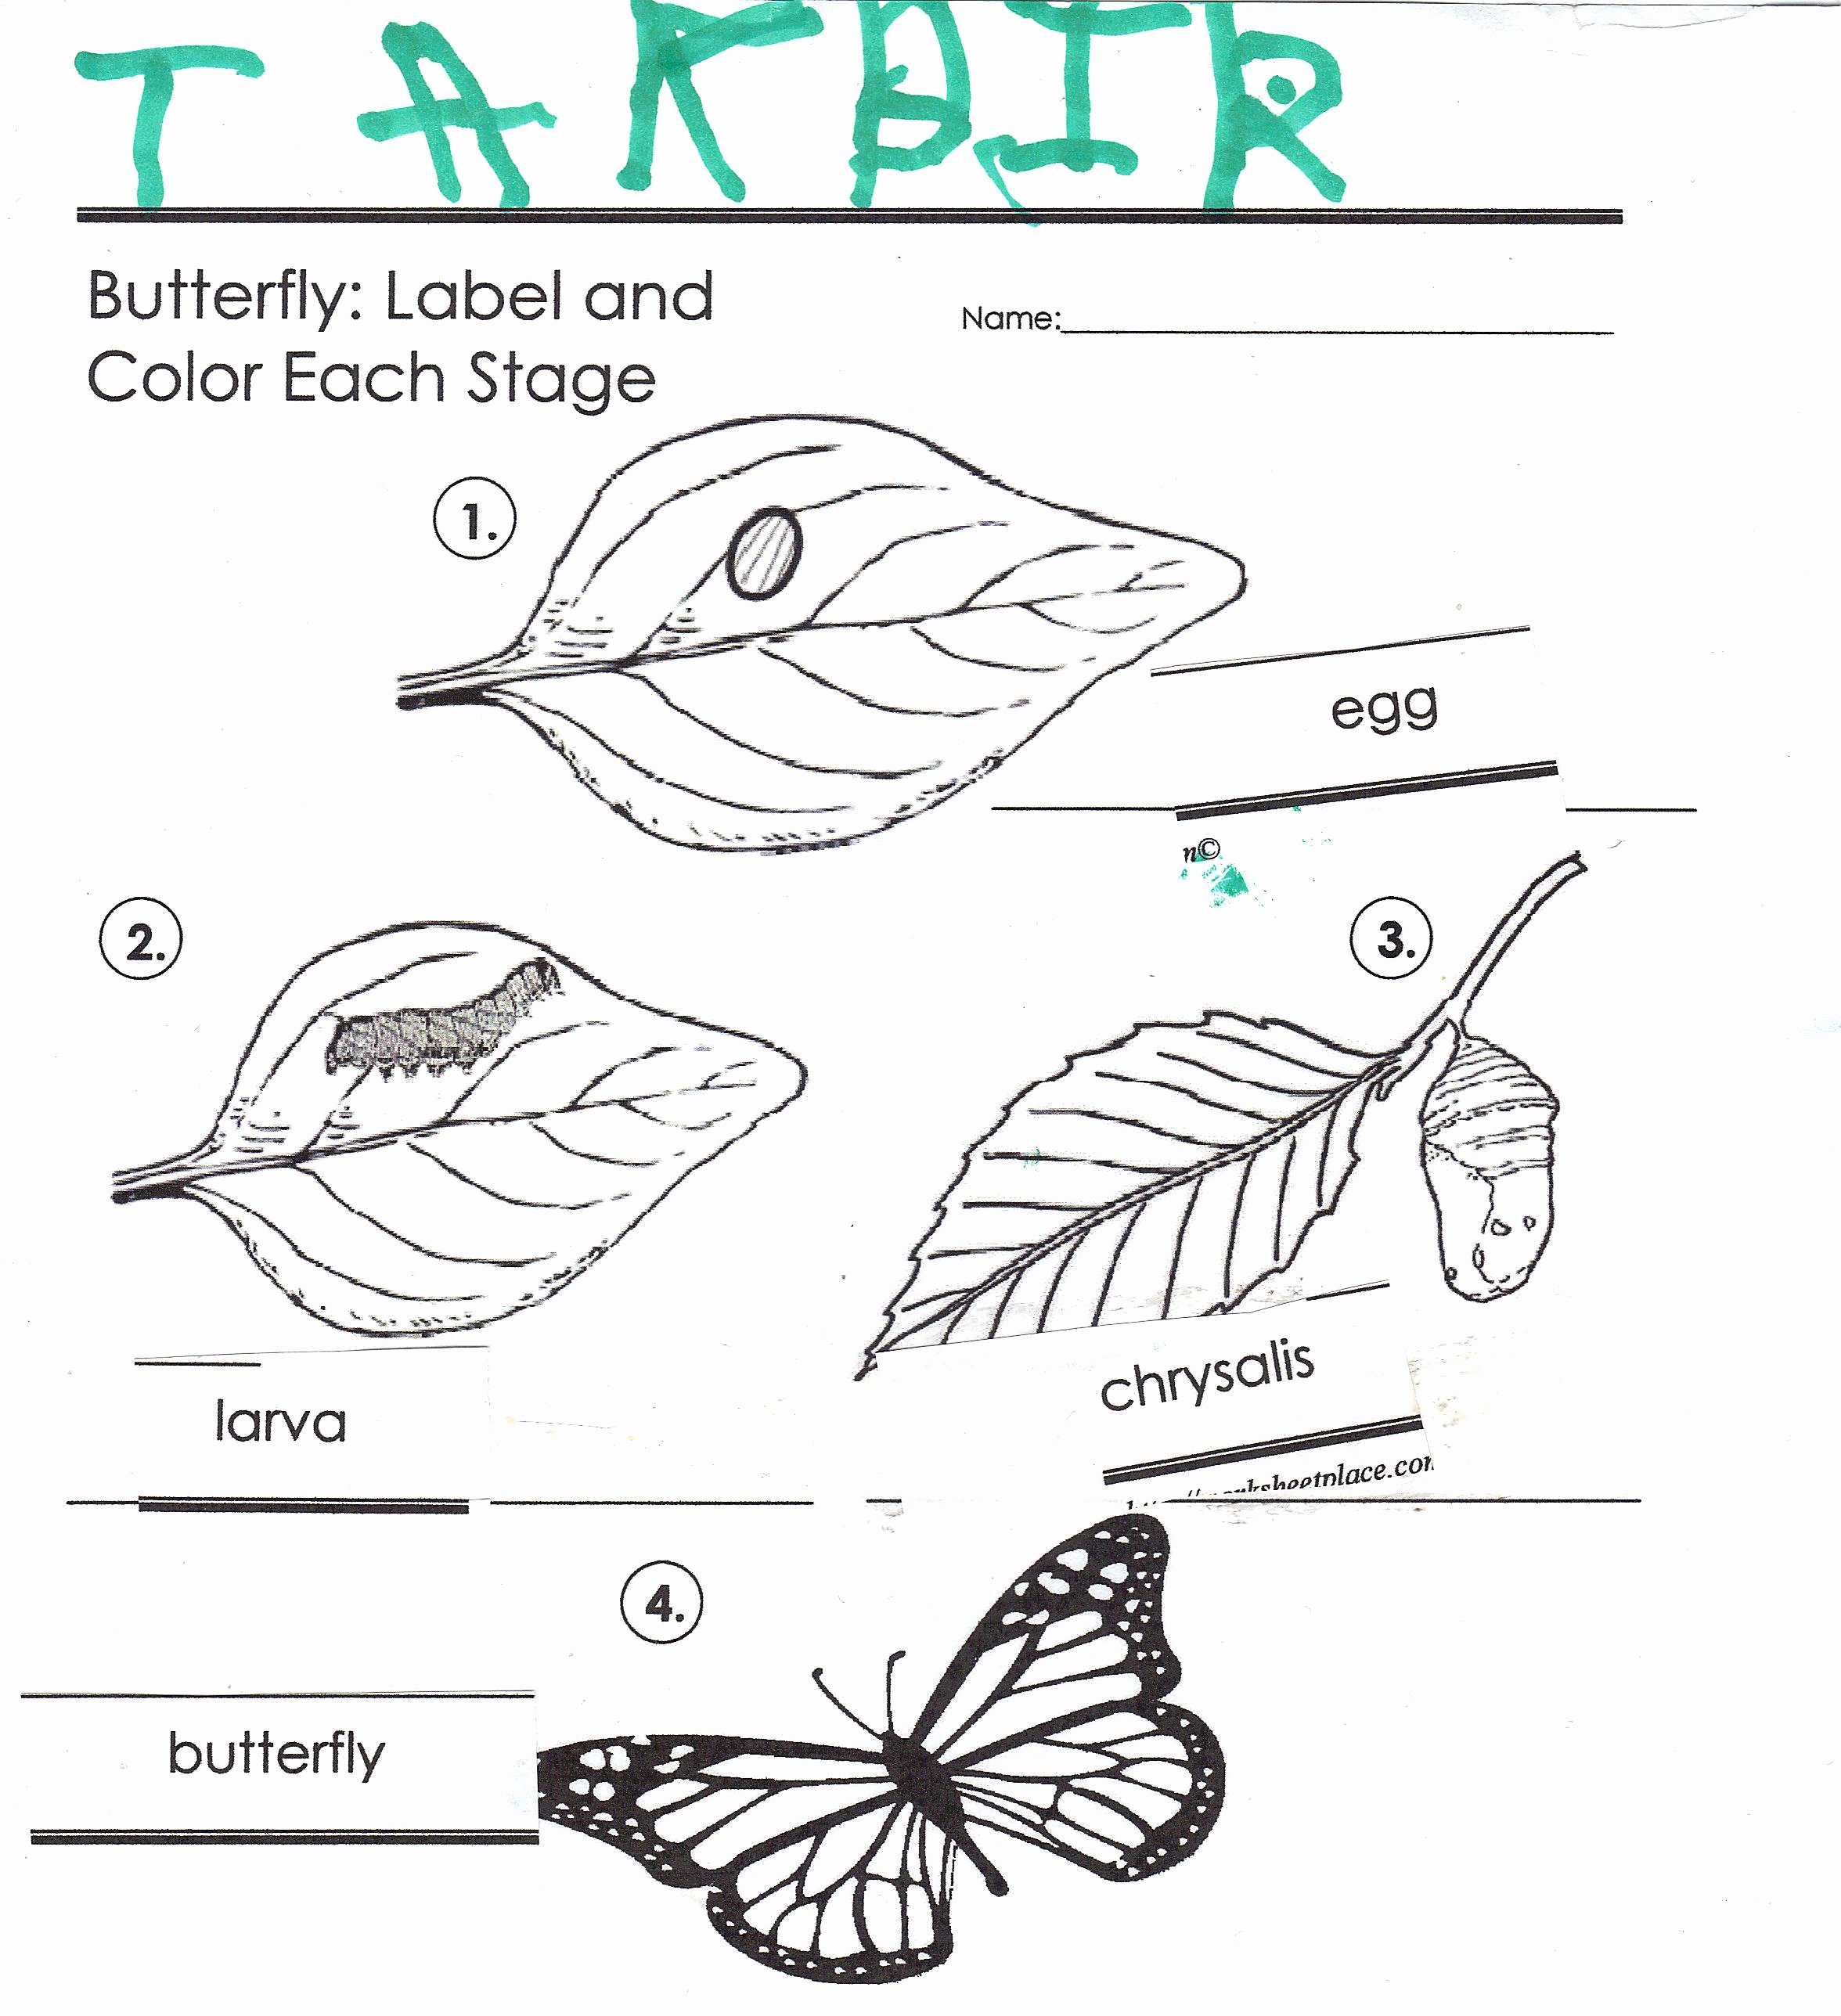 Butterfly Life Cycle Worksheet Unique the butterfly Life Cycle